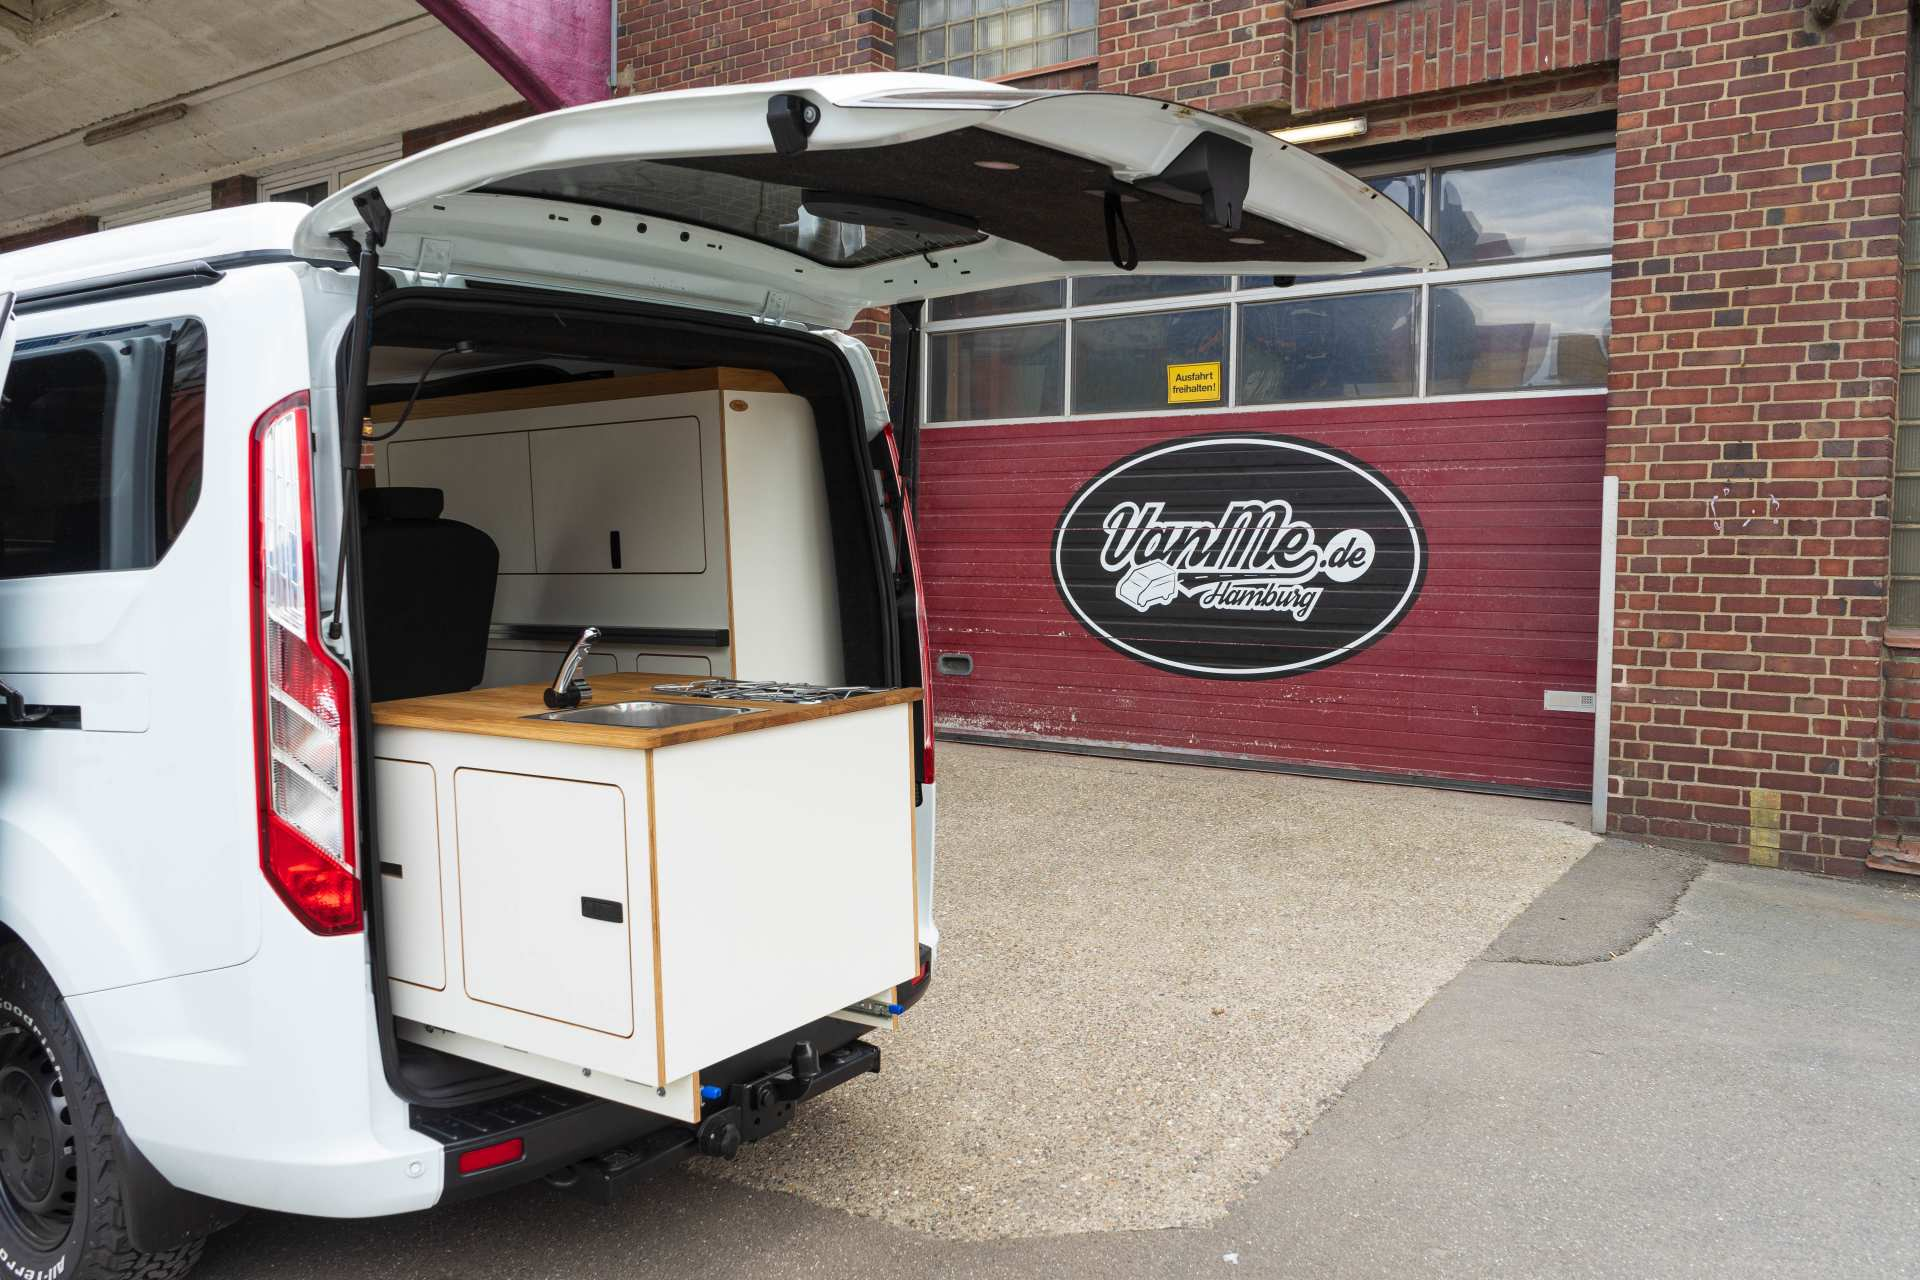 Individualausbau: EXPEDITION Ford Transit Custom, langer Radstand - 5